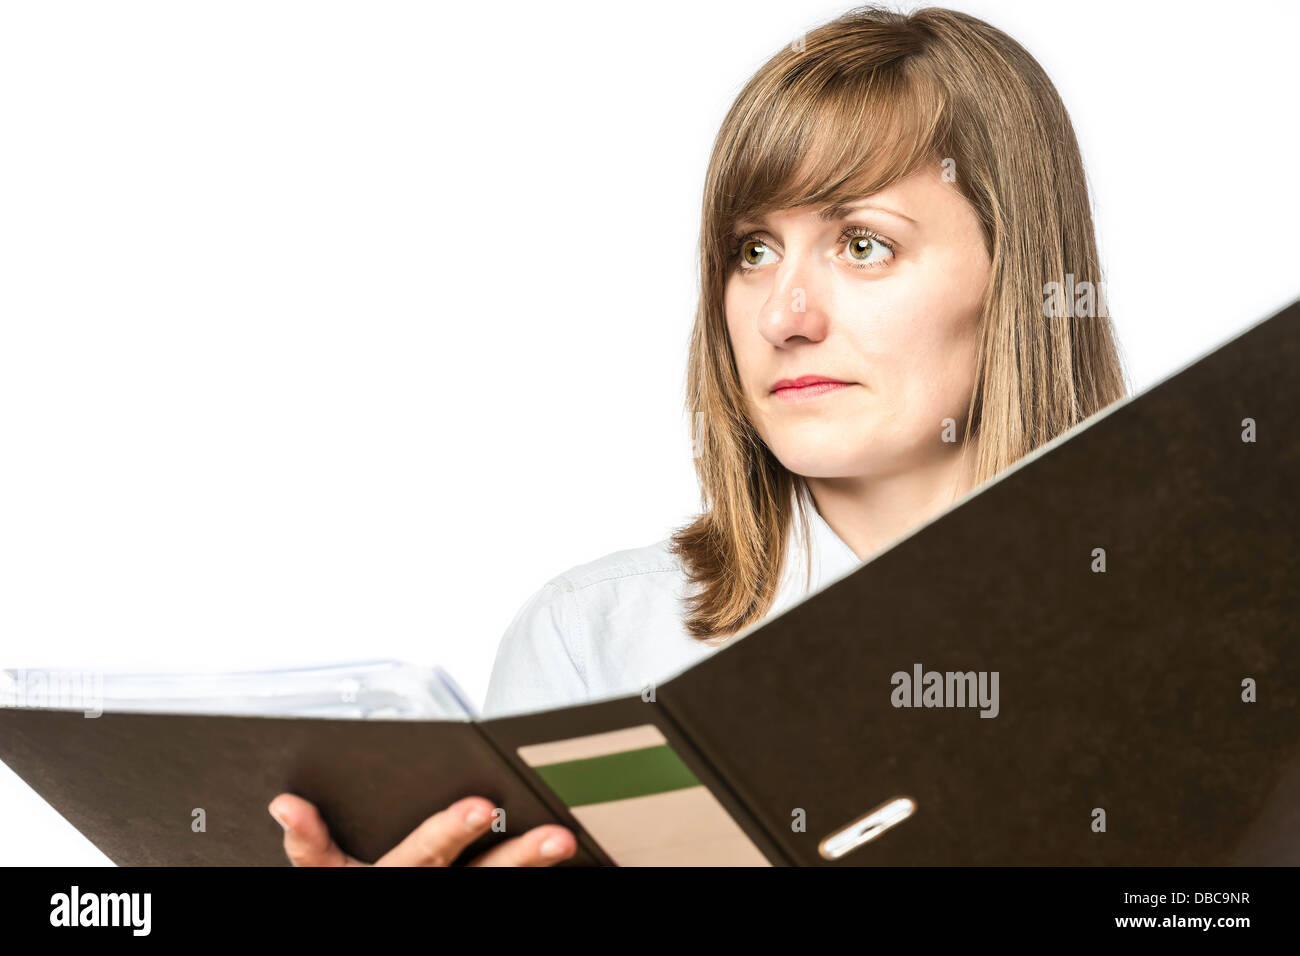 Young woman holding an open file folder, isolated on white background - Stock Image